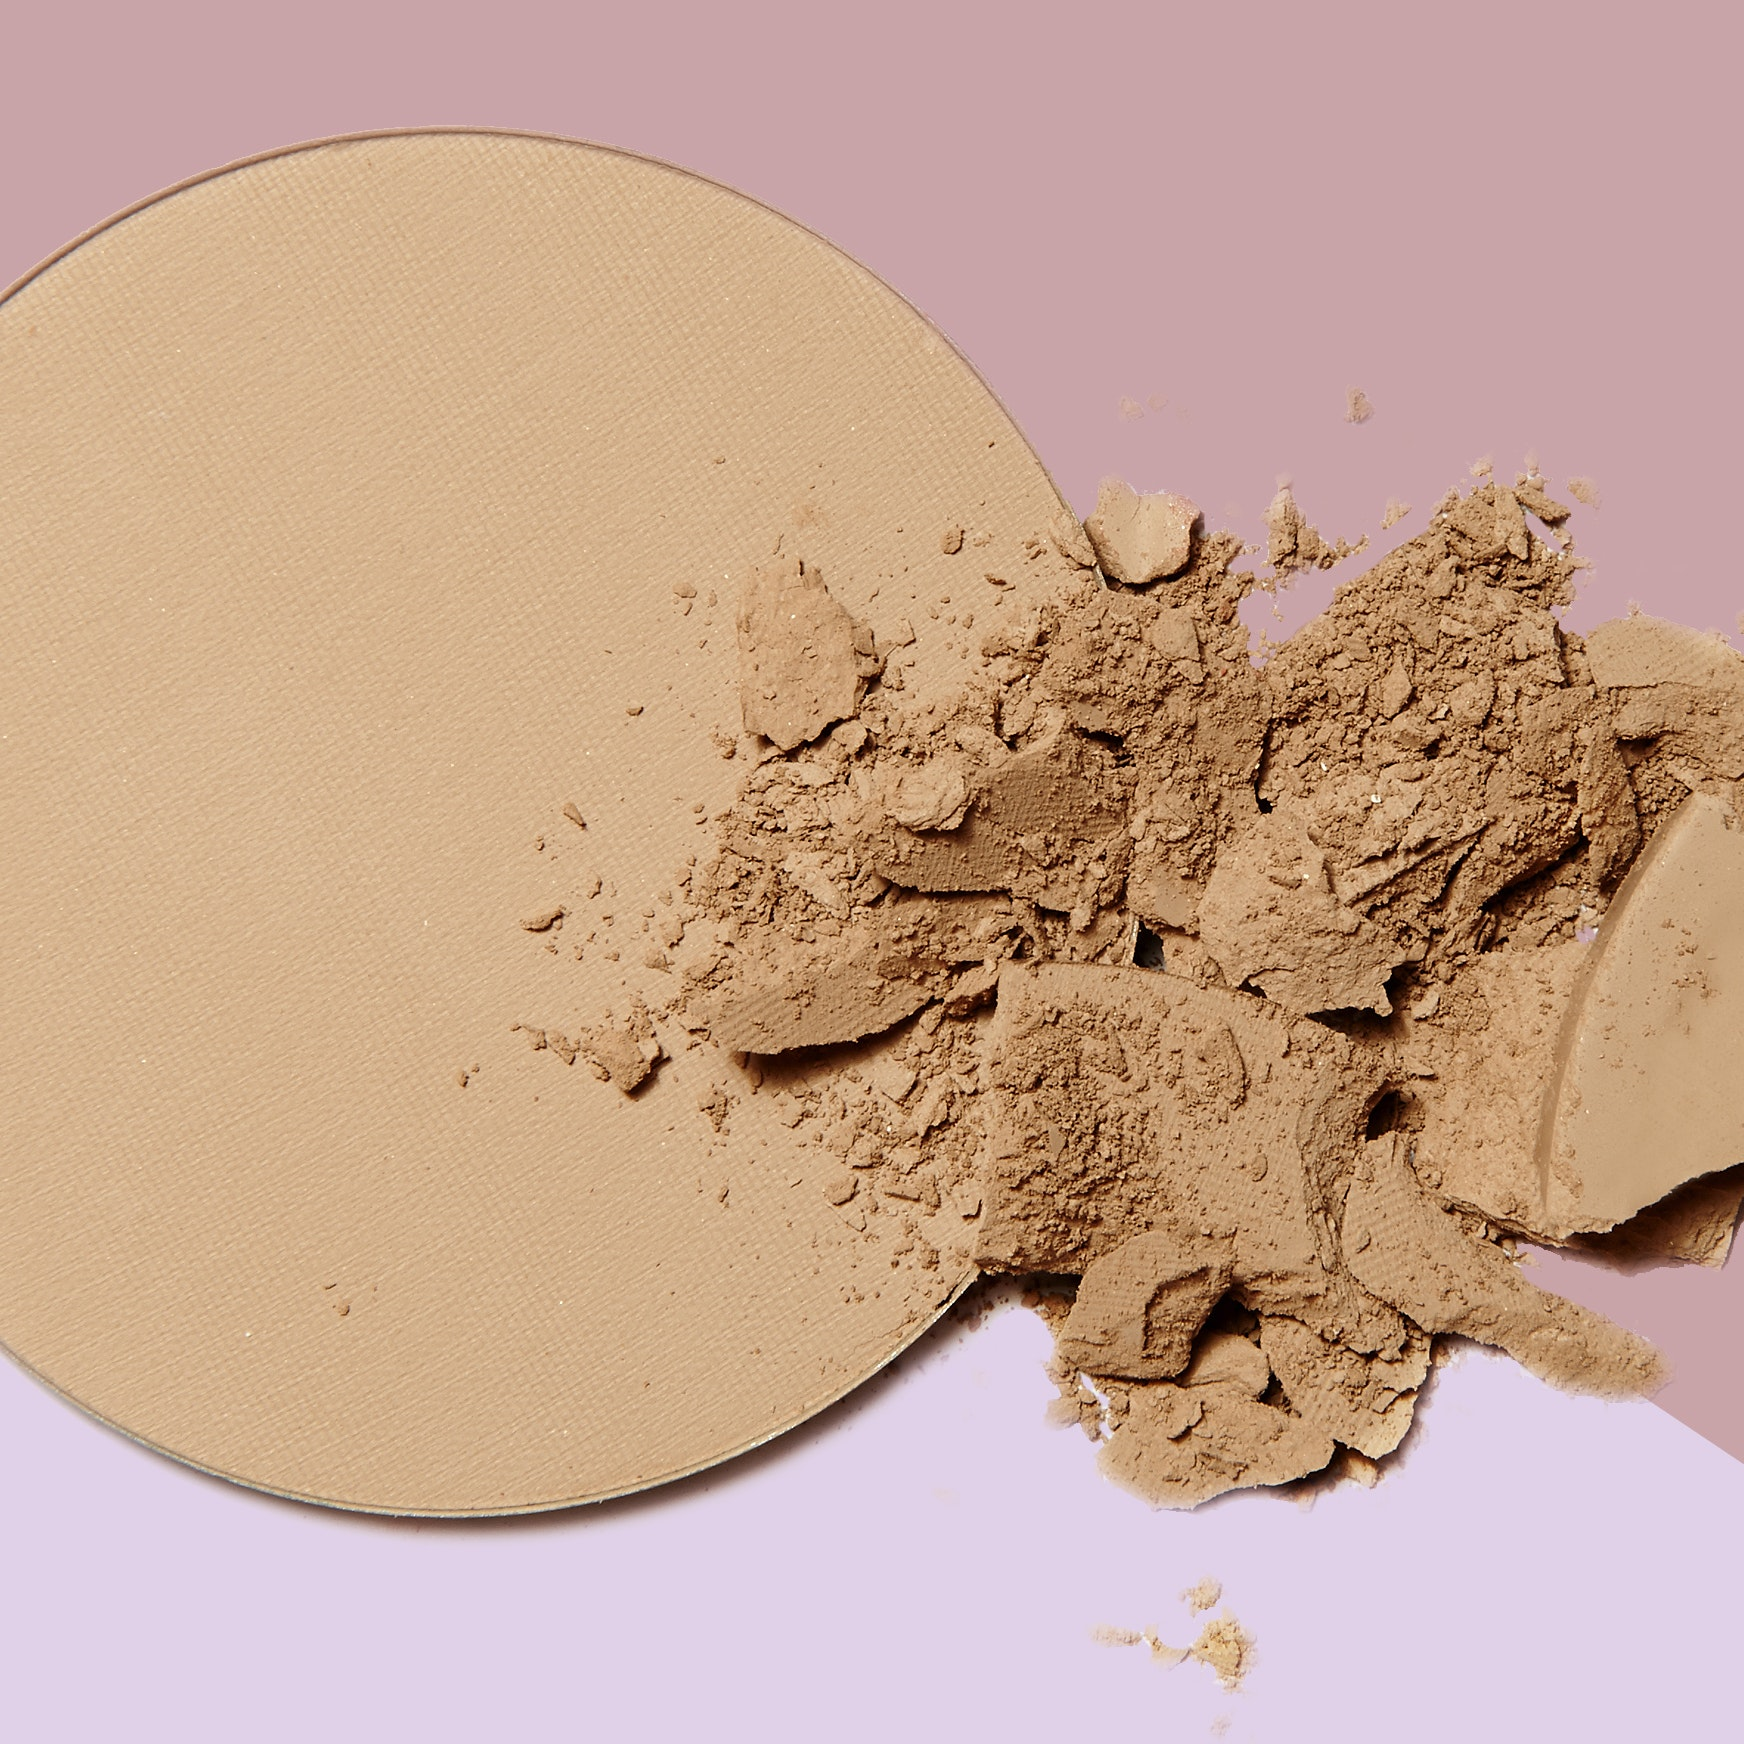 A Professional Makeup Artist Explains How to Find the Perfect Powder For You